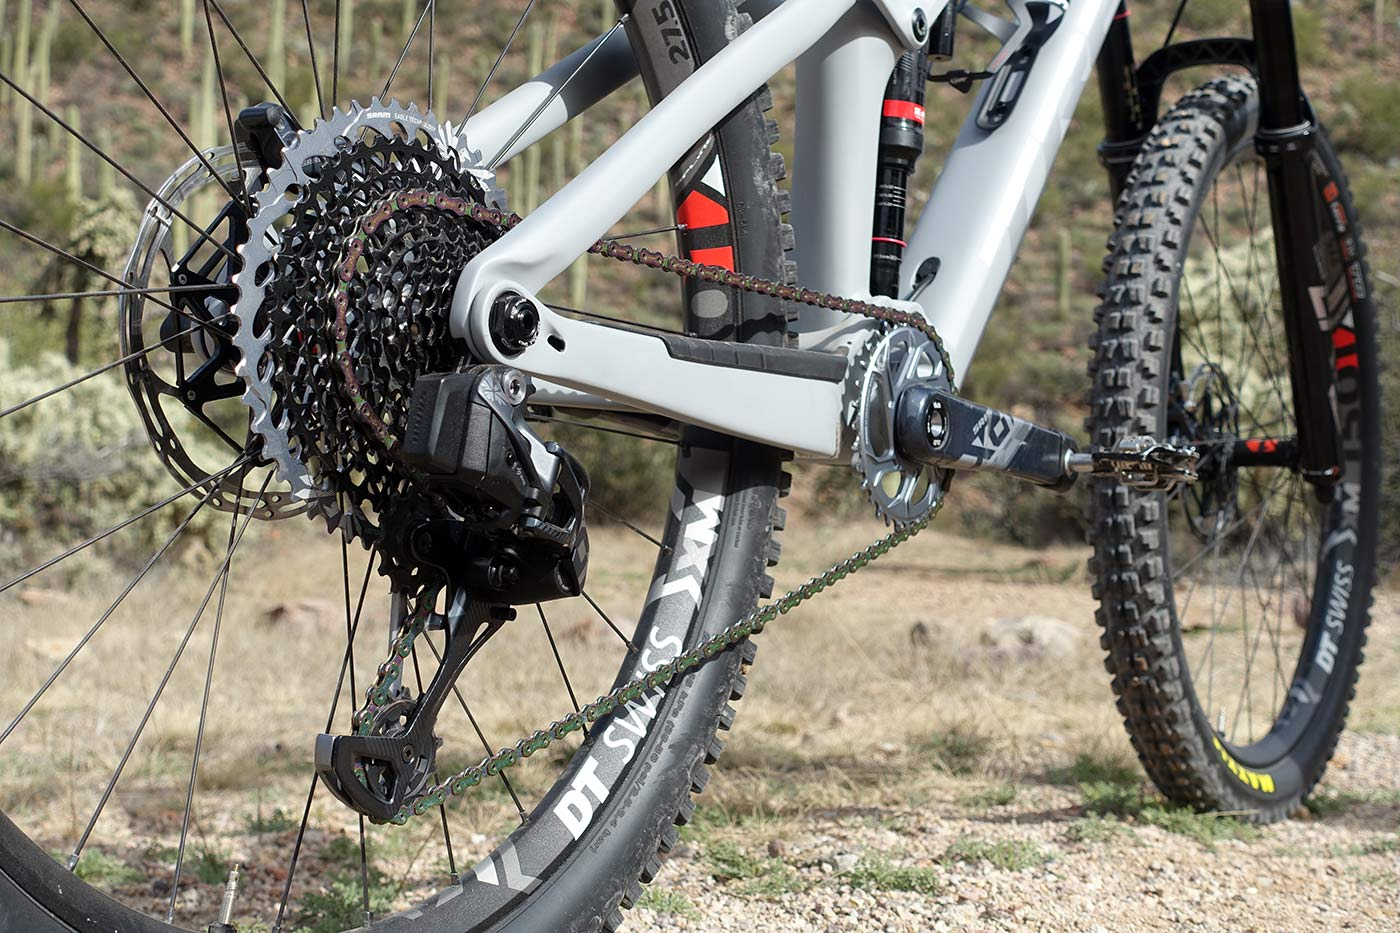 QnA VBage SRAM Eagle AXS wireless mountain bike group – Complete technical overview